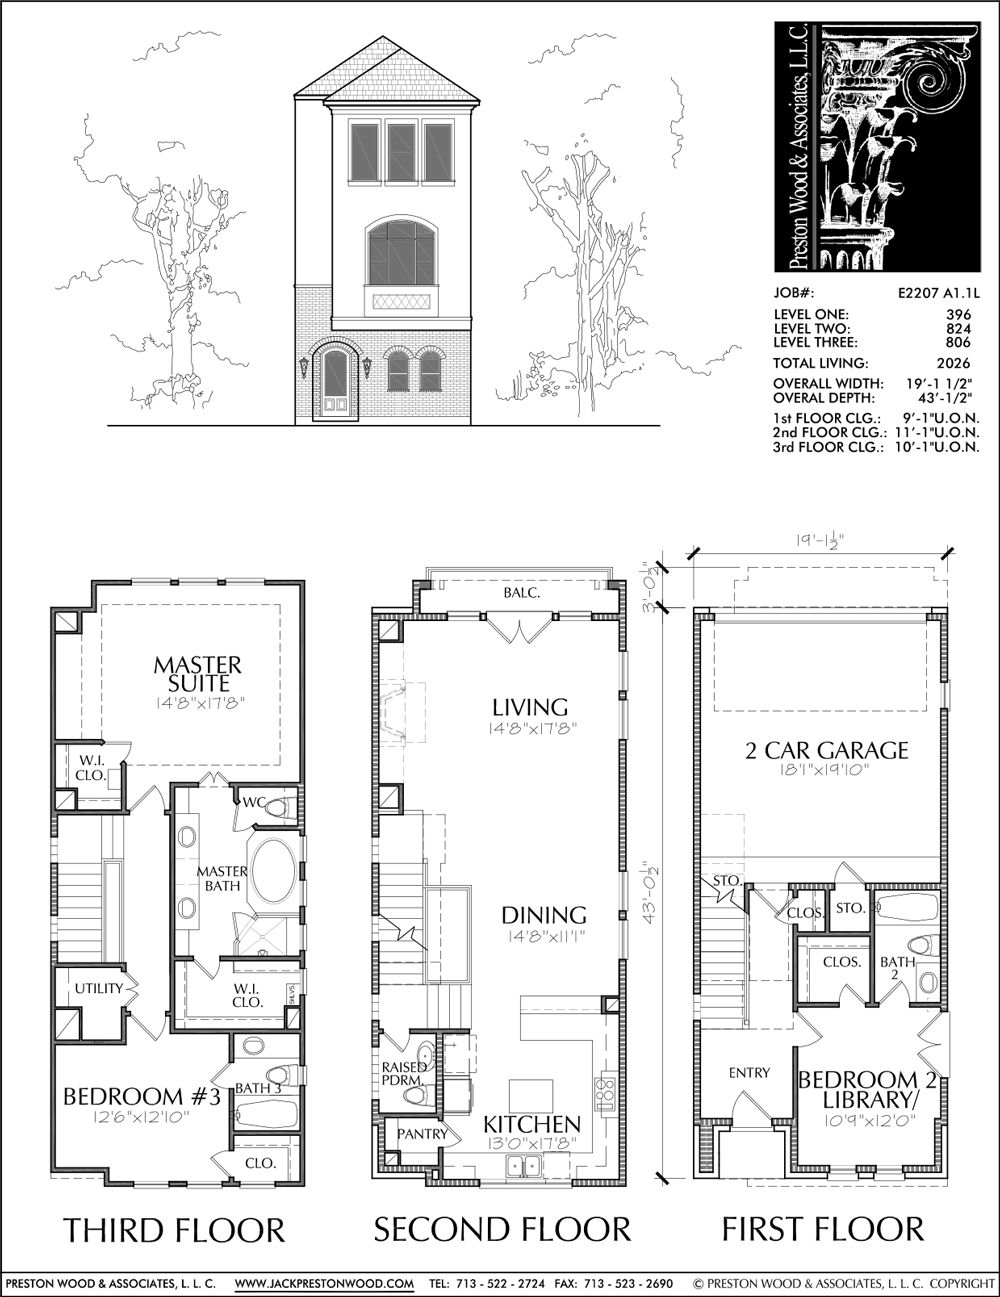 Three Story Townhouse Plan E2207 A1 1 Narrow House Designs Narrow Lot House Plans Brownstone Homes